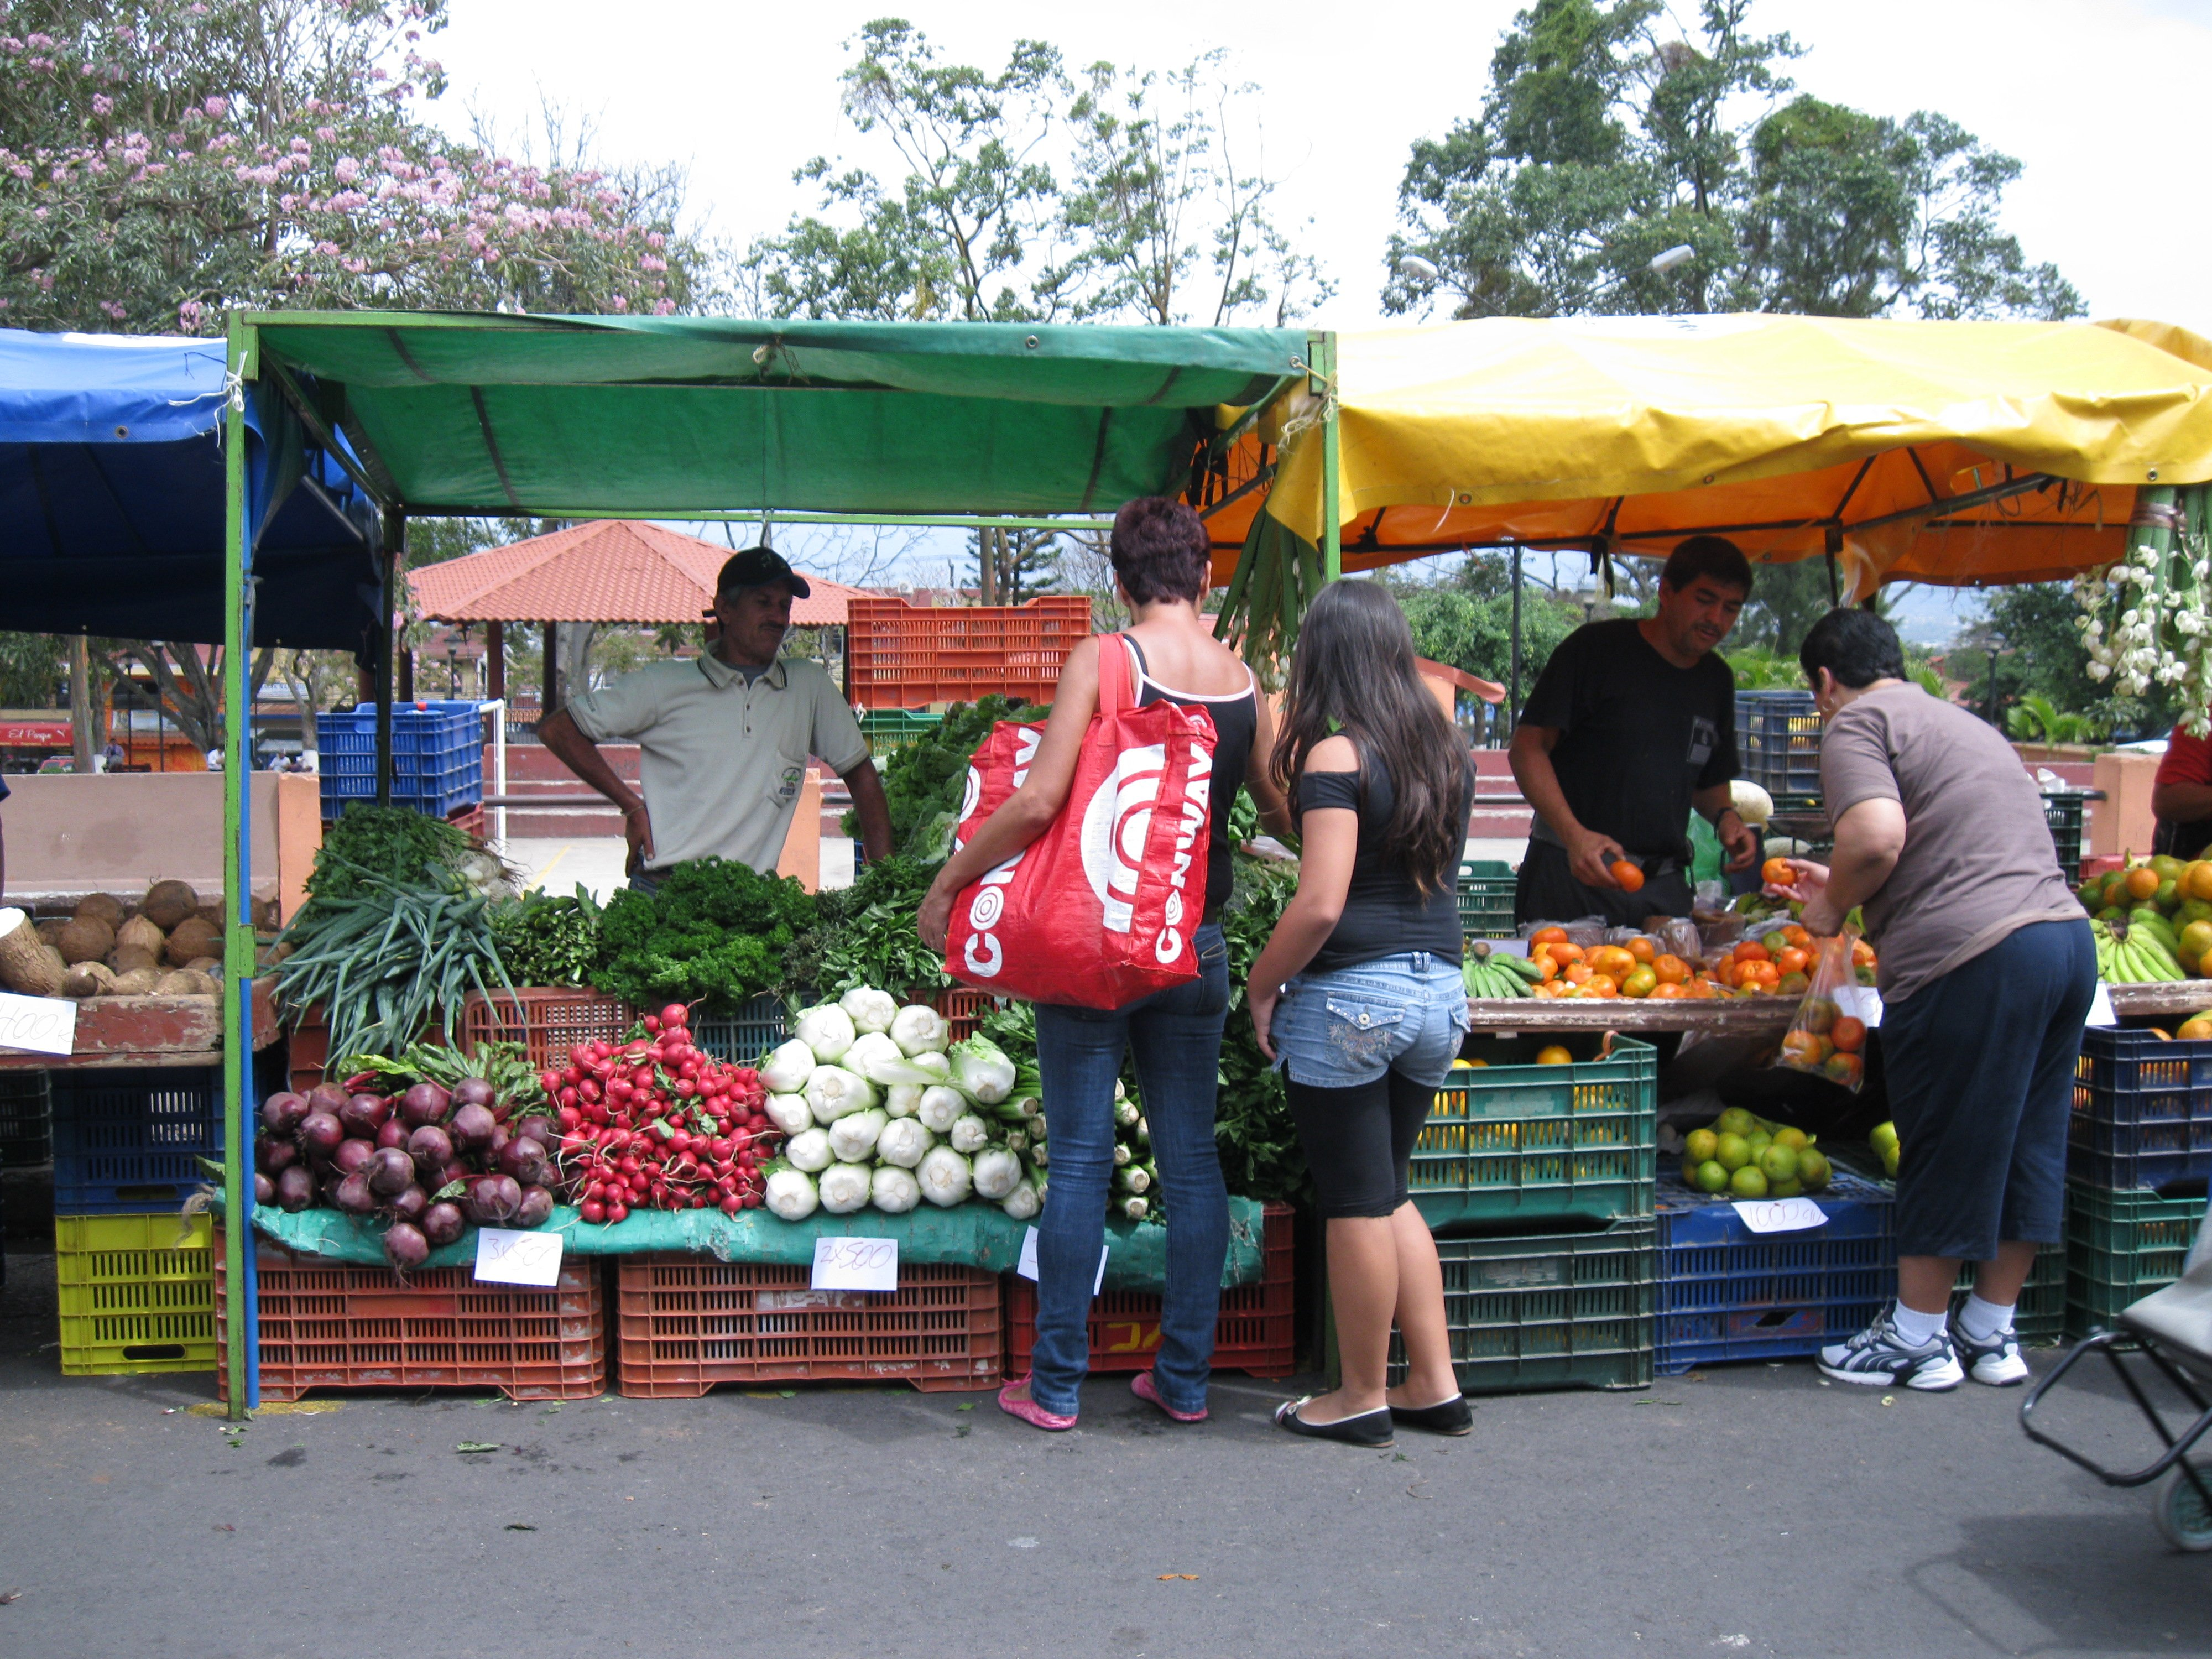 The feria, or farmers' market, is where everybody gets their fresh fruits and vegetables for the week. Stands are set up in a town square, on the main street, or by the side of the road.